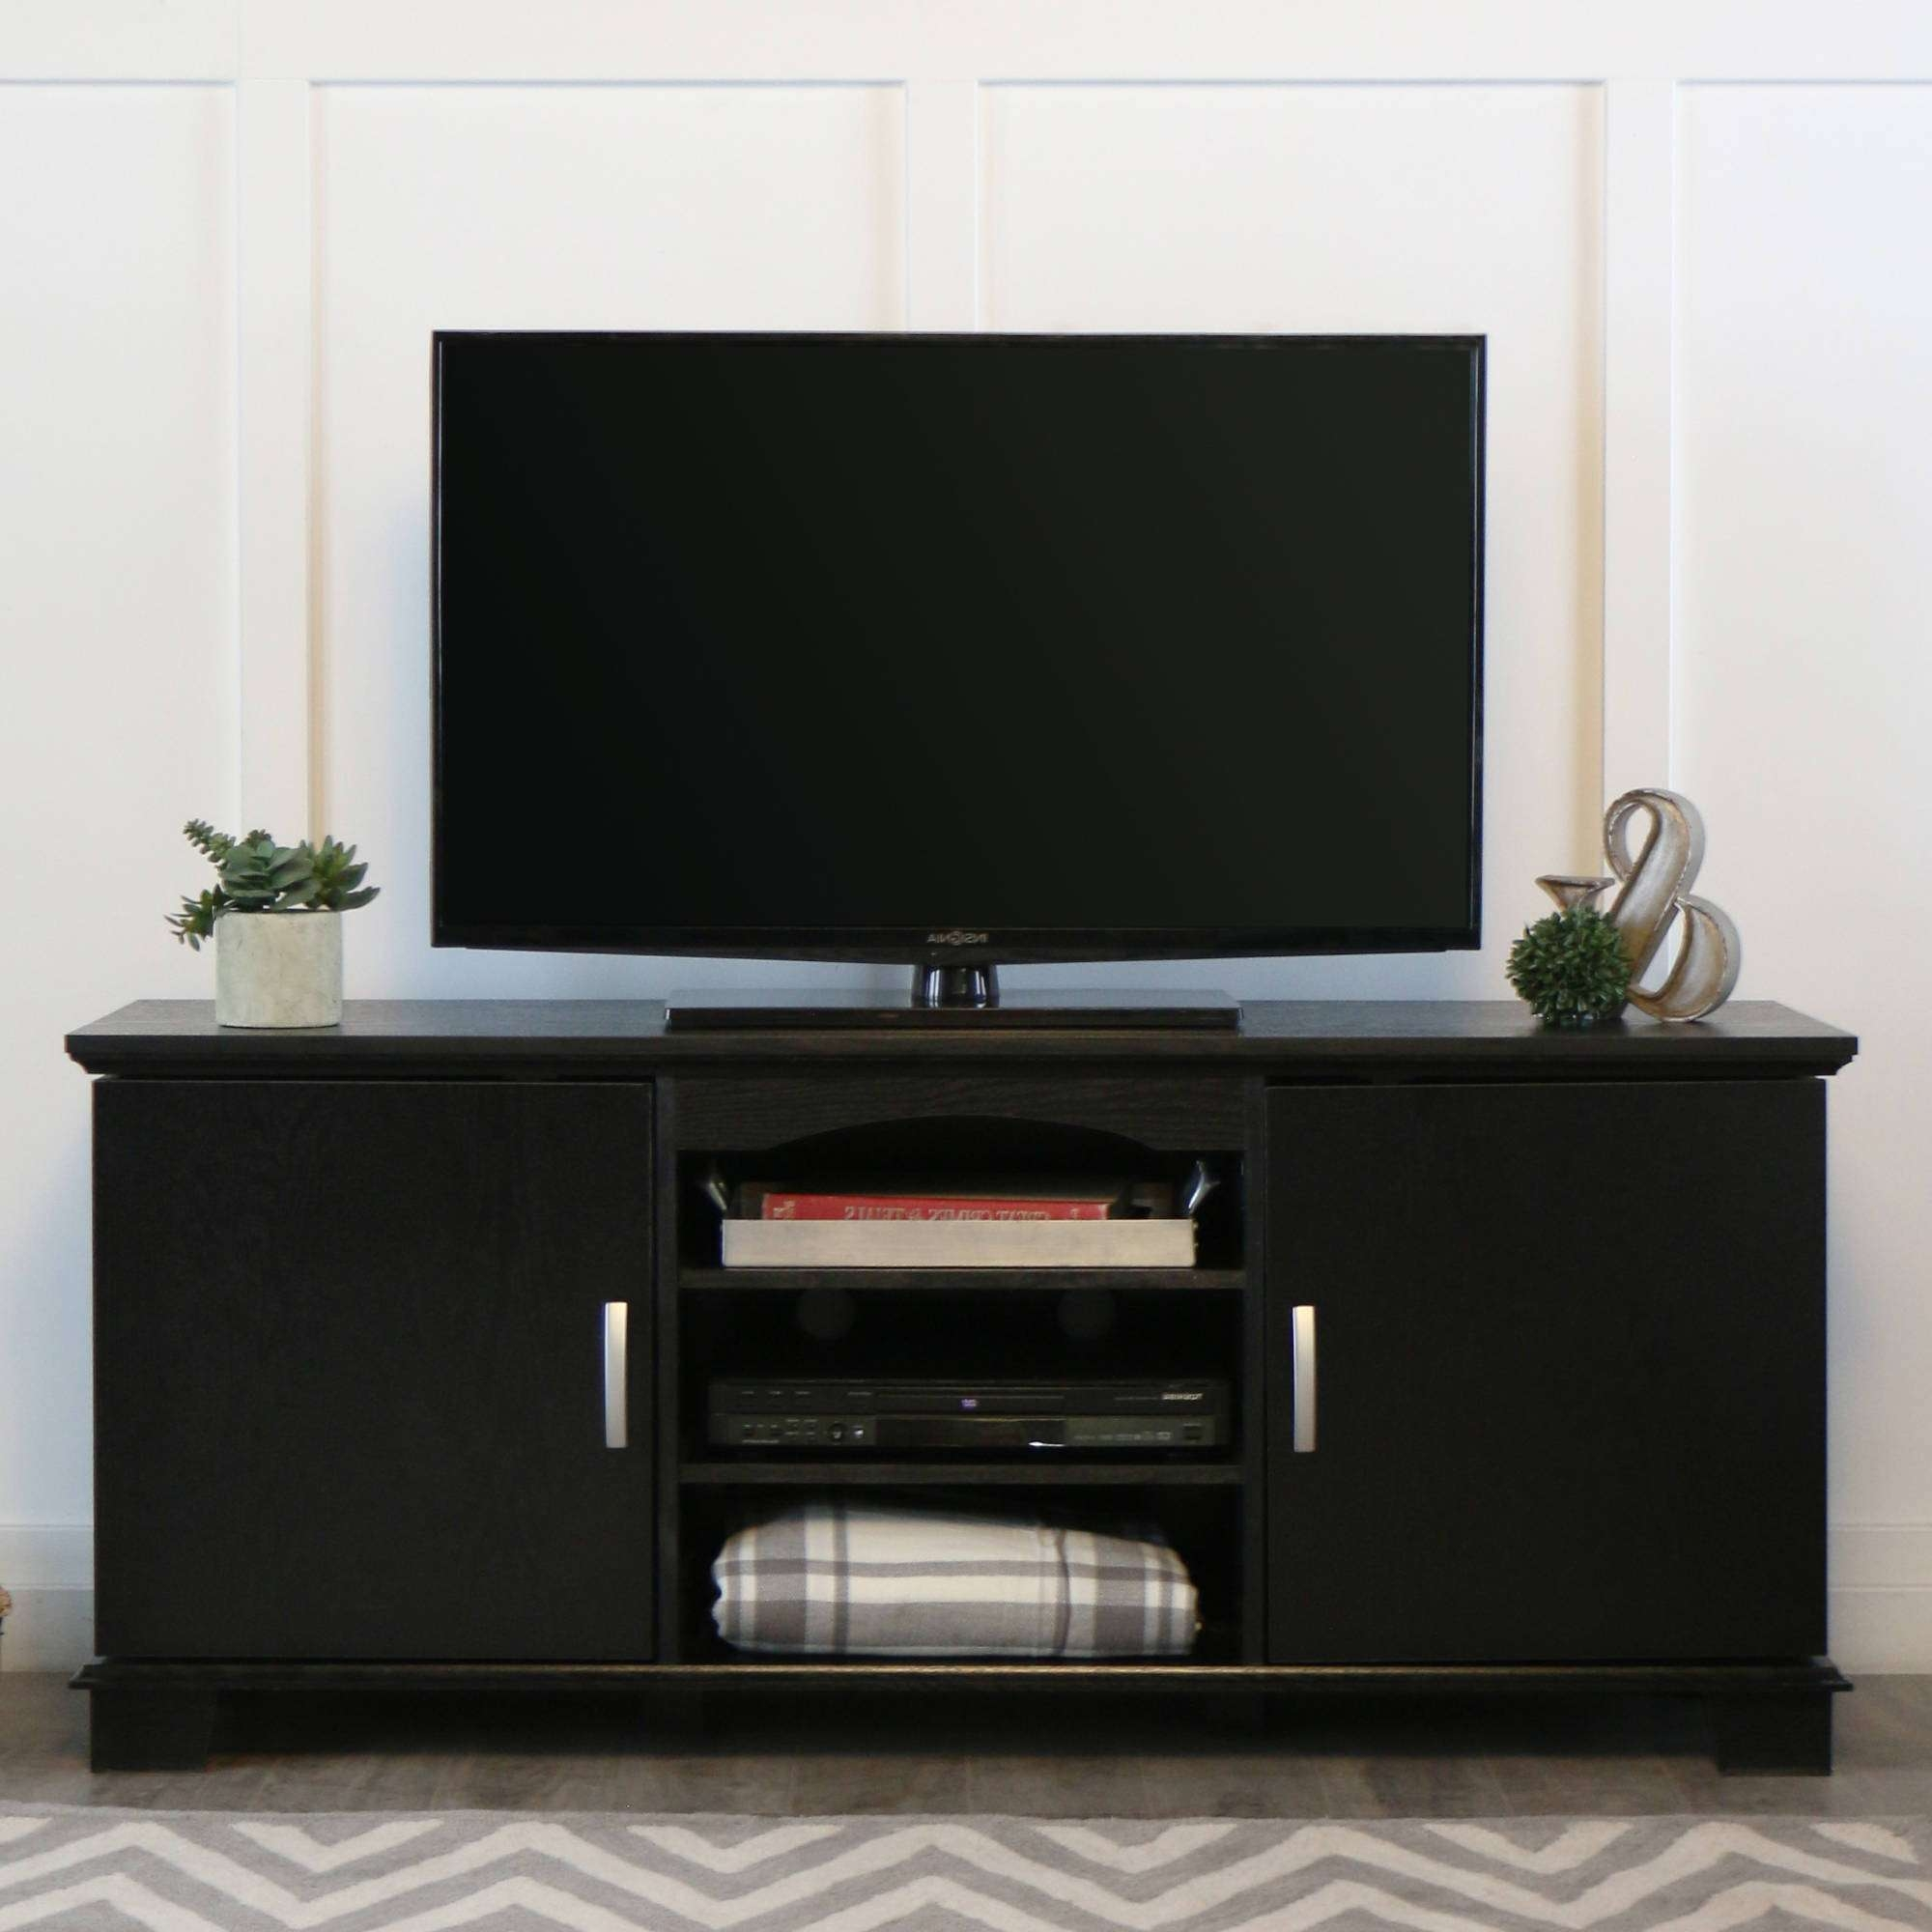 "Walker Edison Black Tv Stand For Tvs Up To 65"", Multiple Colors Inside Tv Stands For Large Tvs (View 15 of 15)"